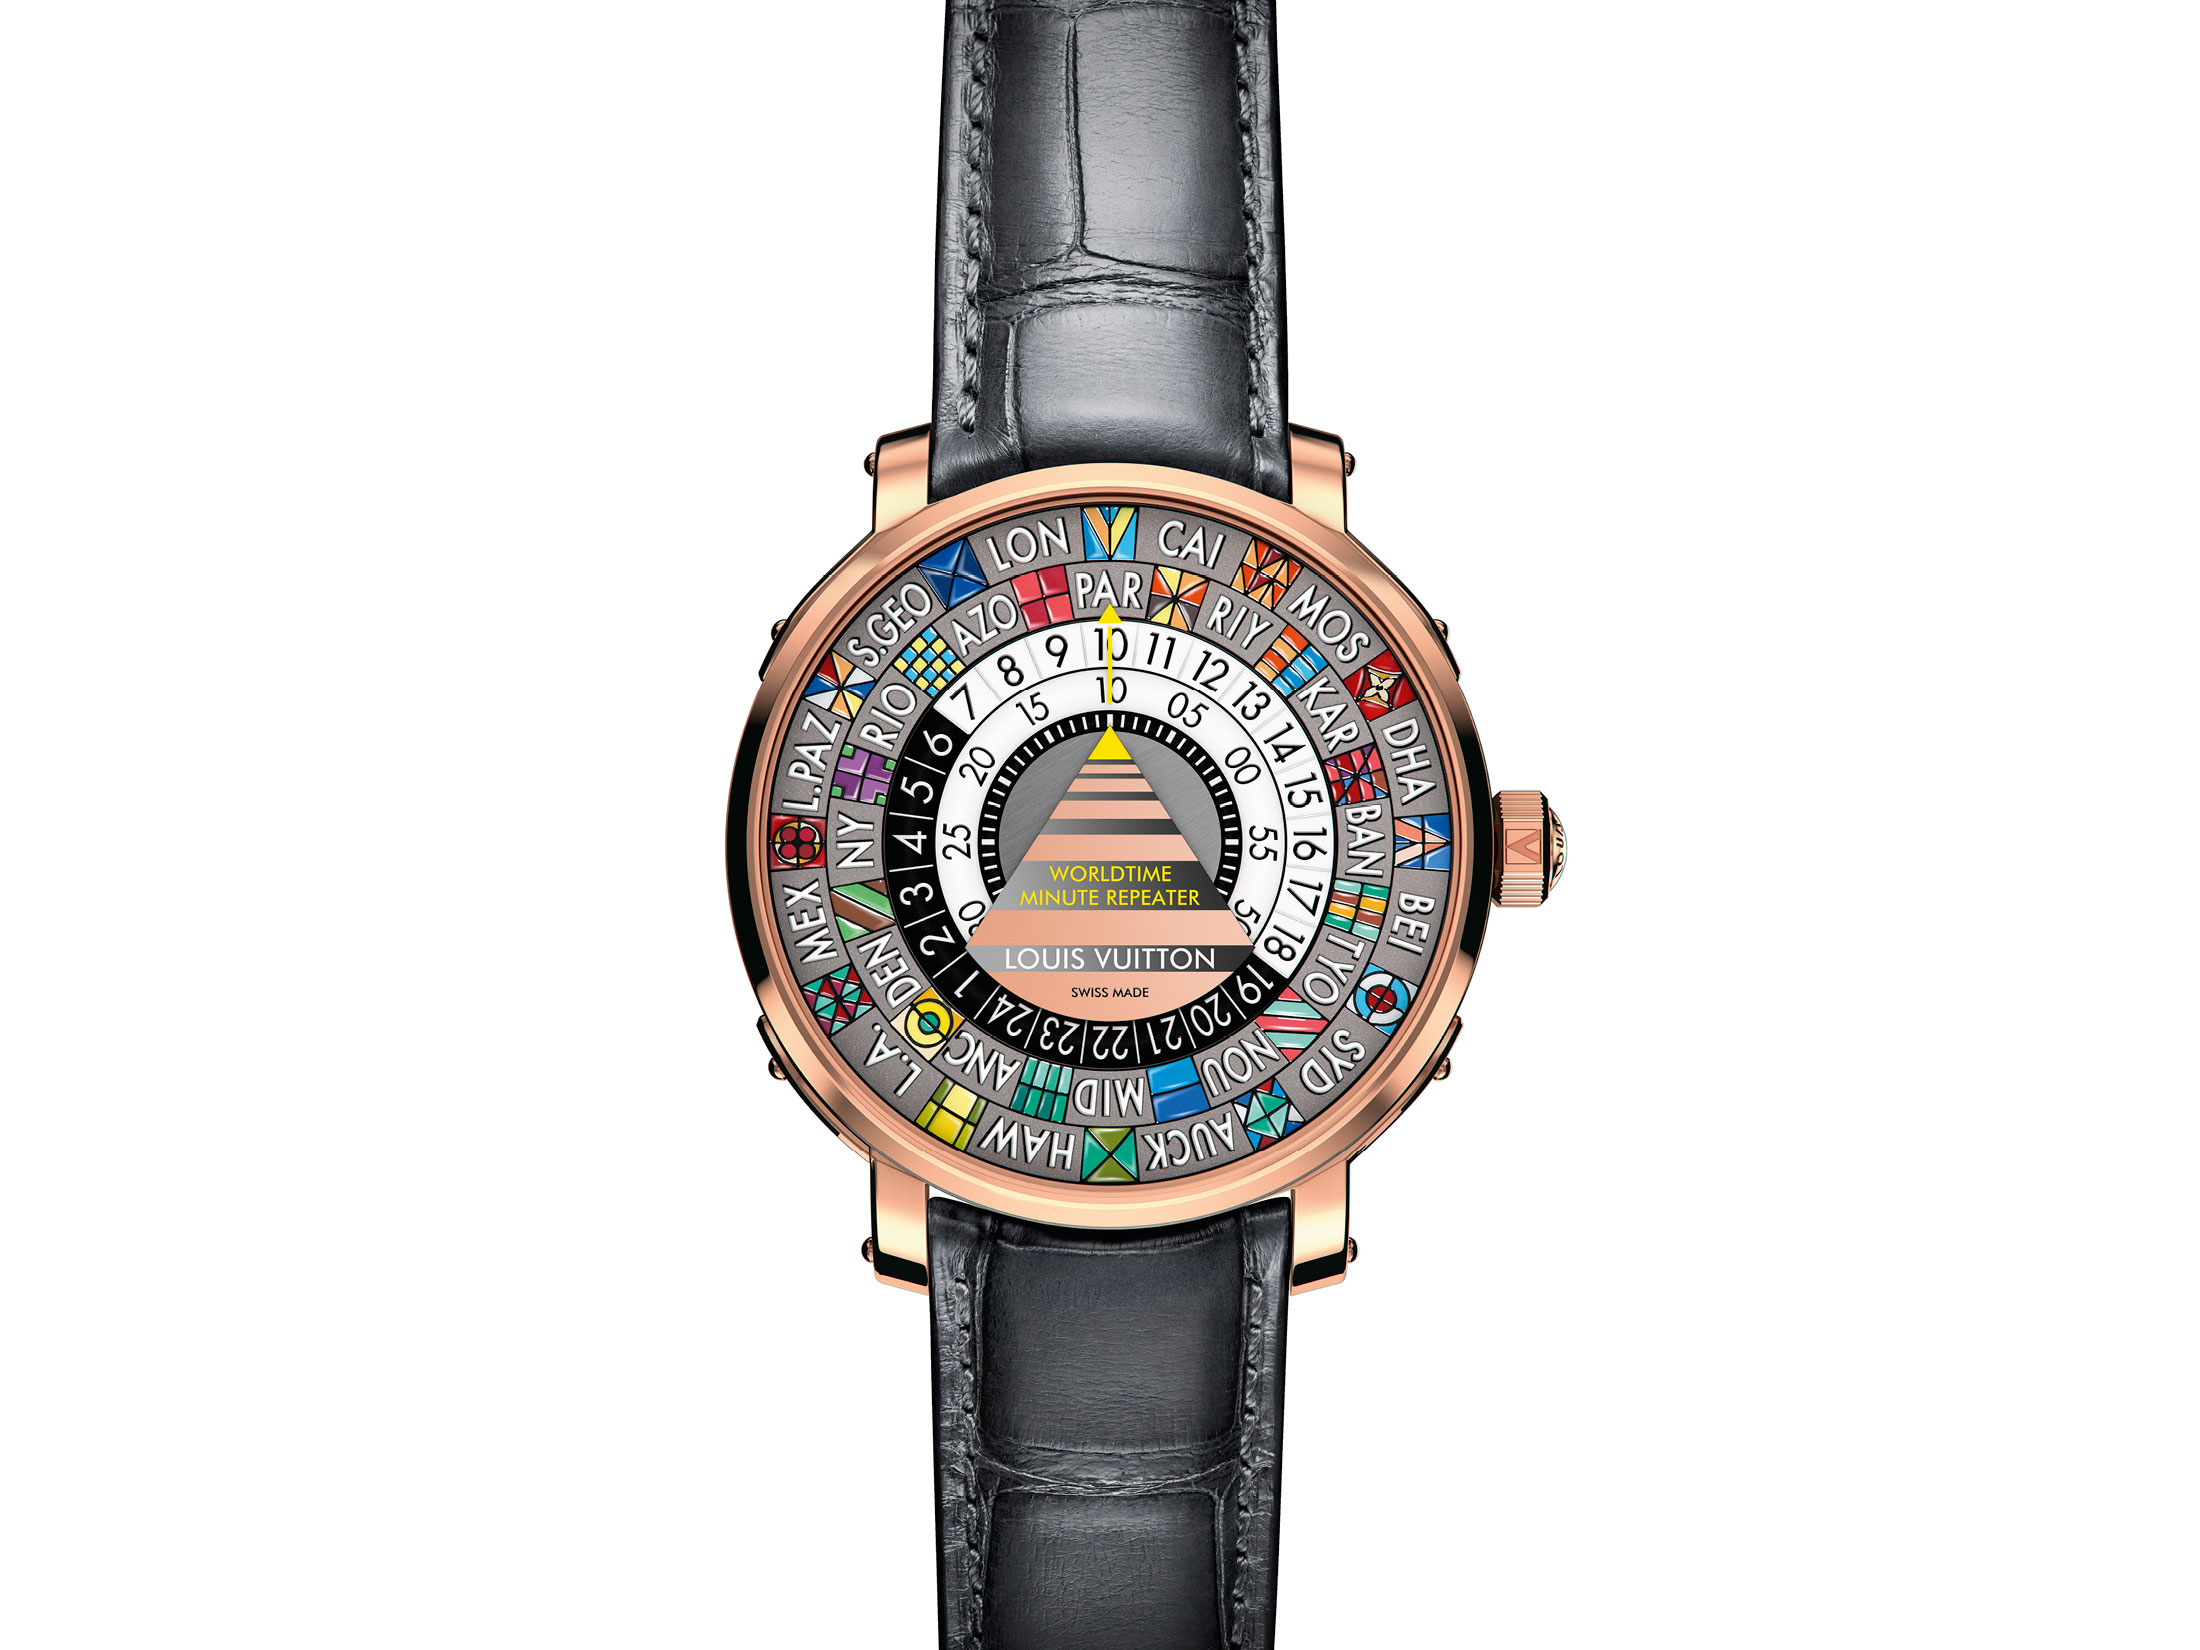 Louis Vuitton Escale Minute Repeater Worldtime Watch